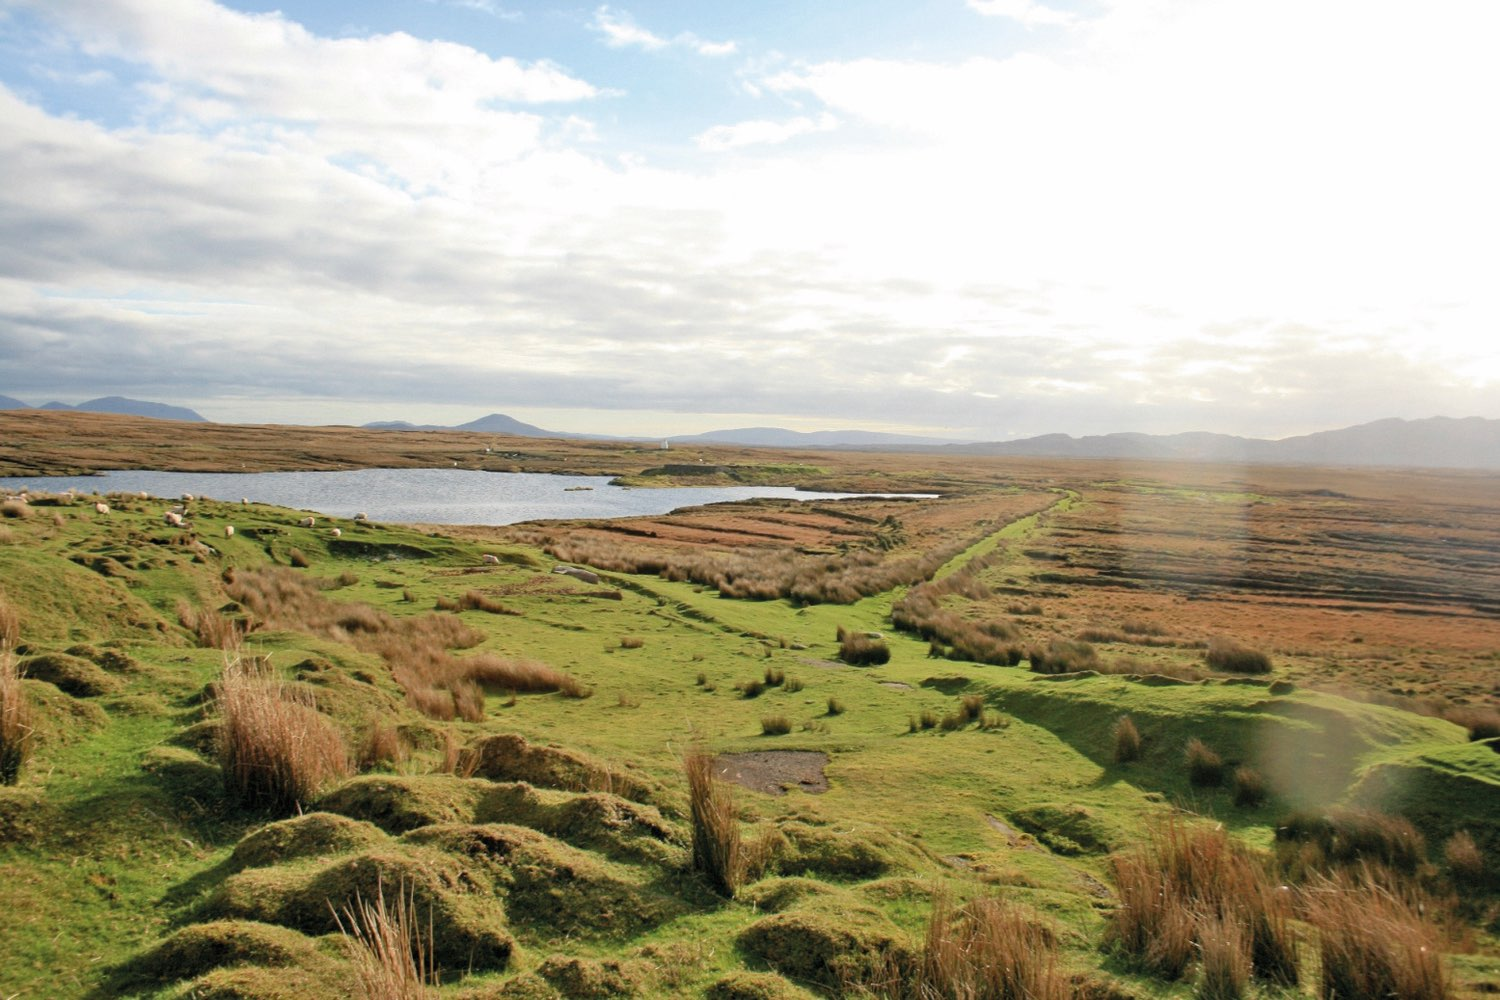 The Derrygimlagh landscape offers breathtaking views spotted with tiny lakes and peat bogs.